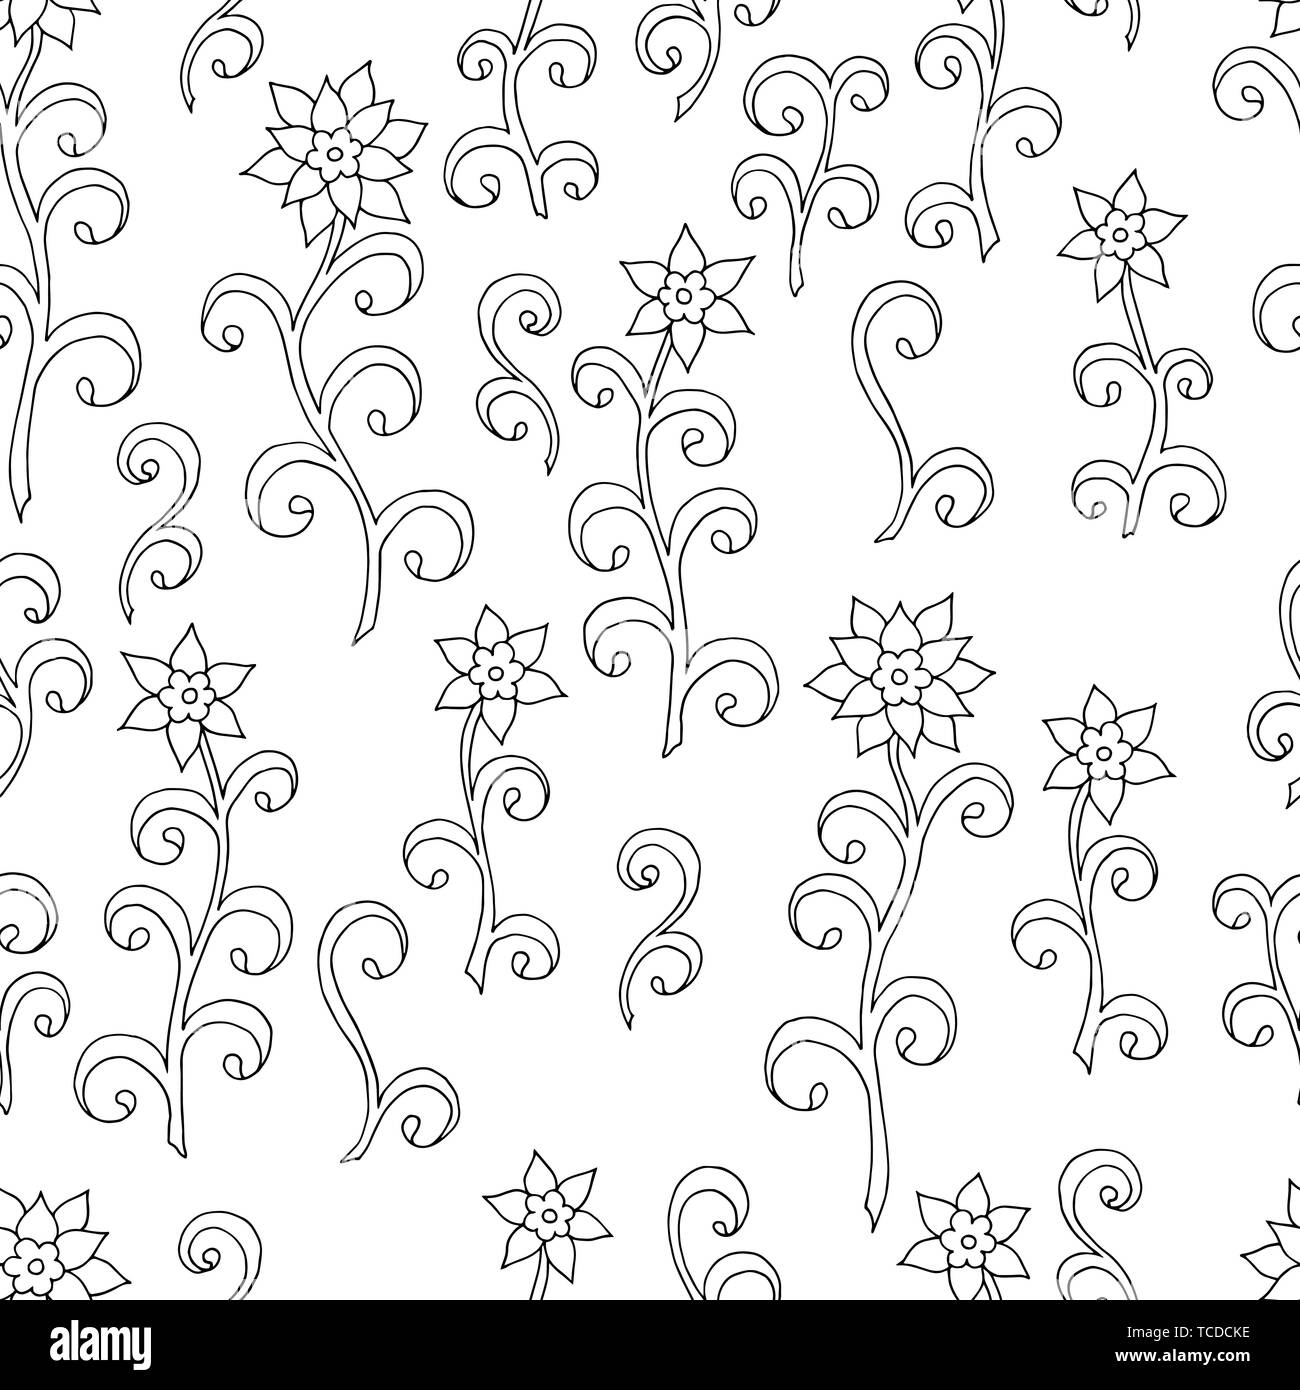 abstract seamless pattern of doodle flowers coloring page for kids and adults TCDCKE